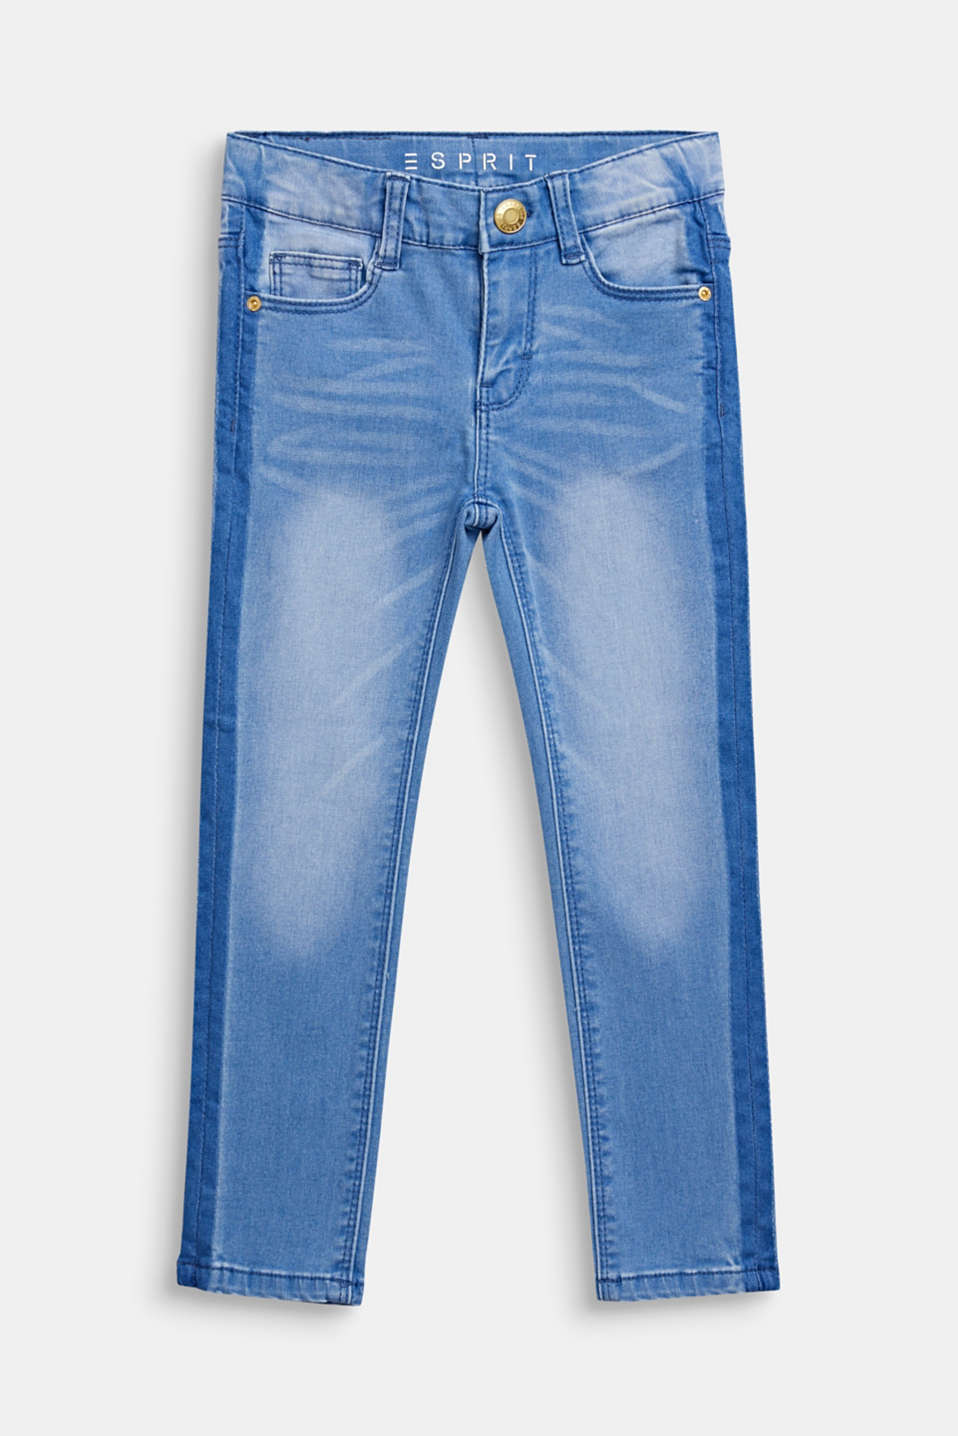 Esprit - Jeans im trendy Washed-Look, Verstellbund